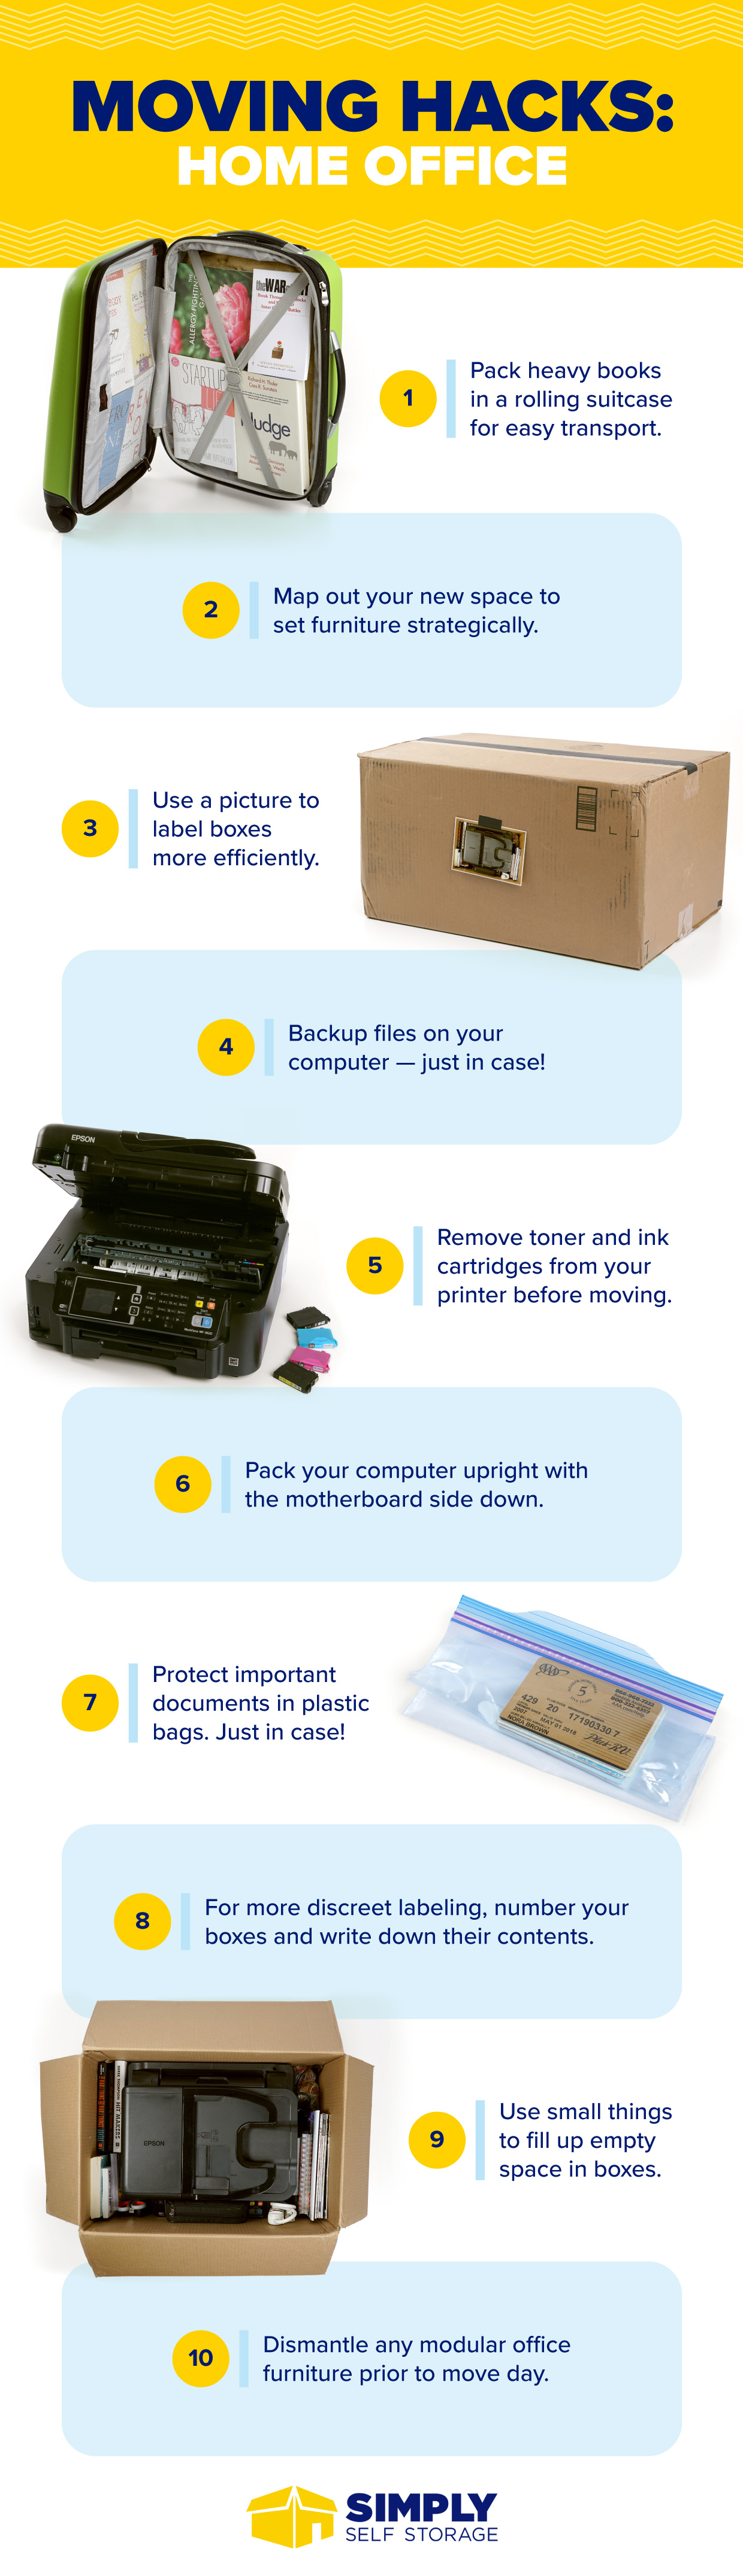 infographic moving hacks for home office